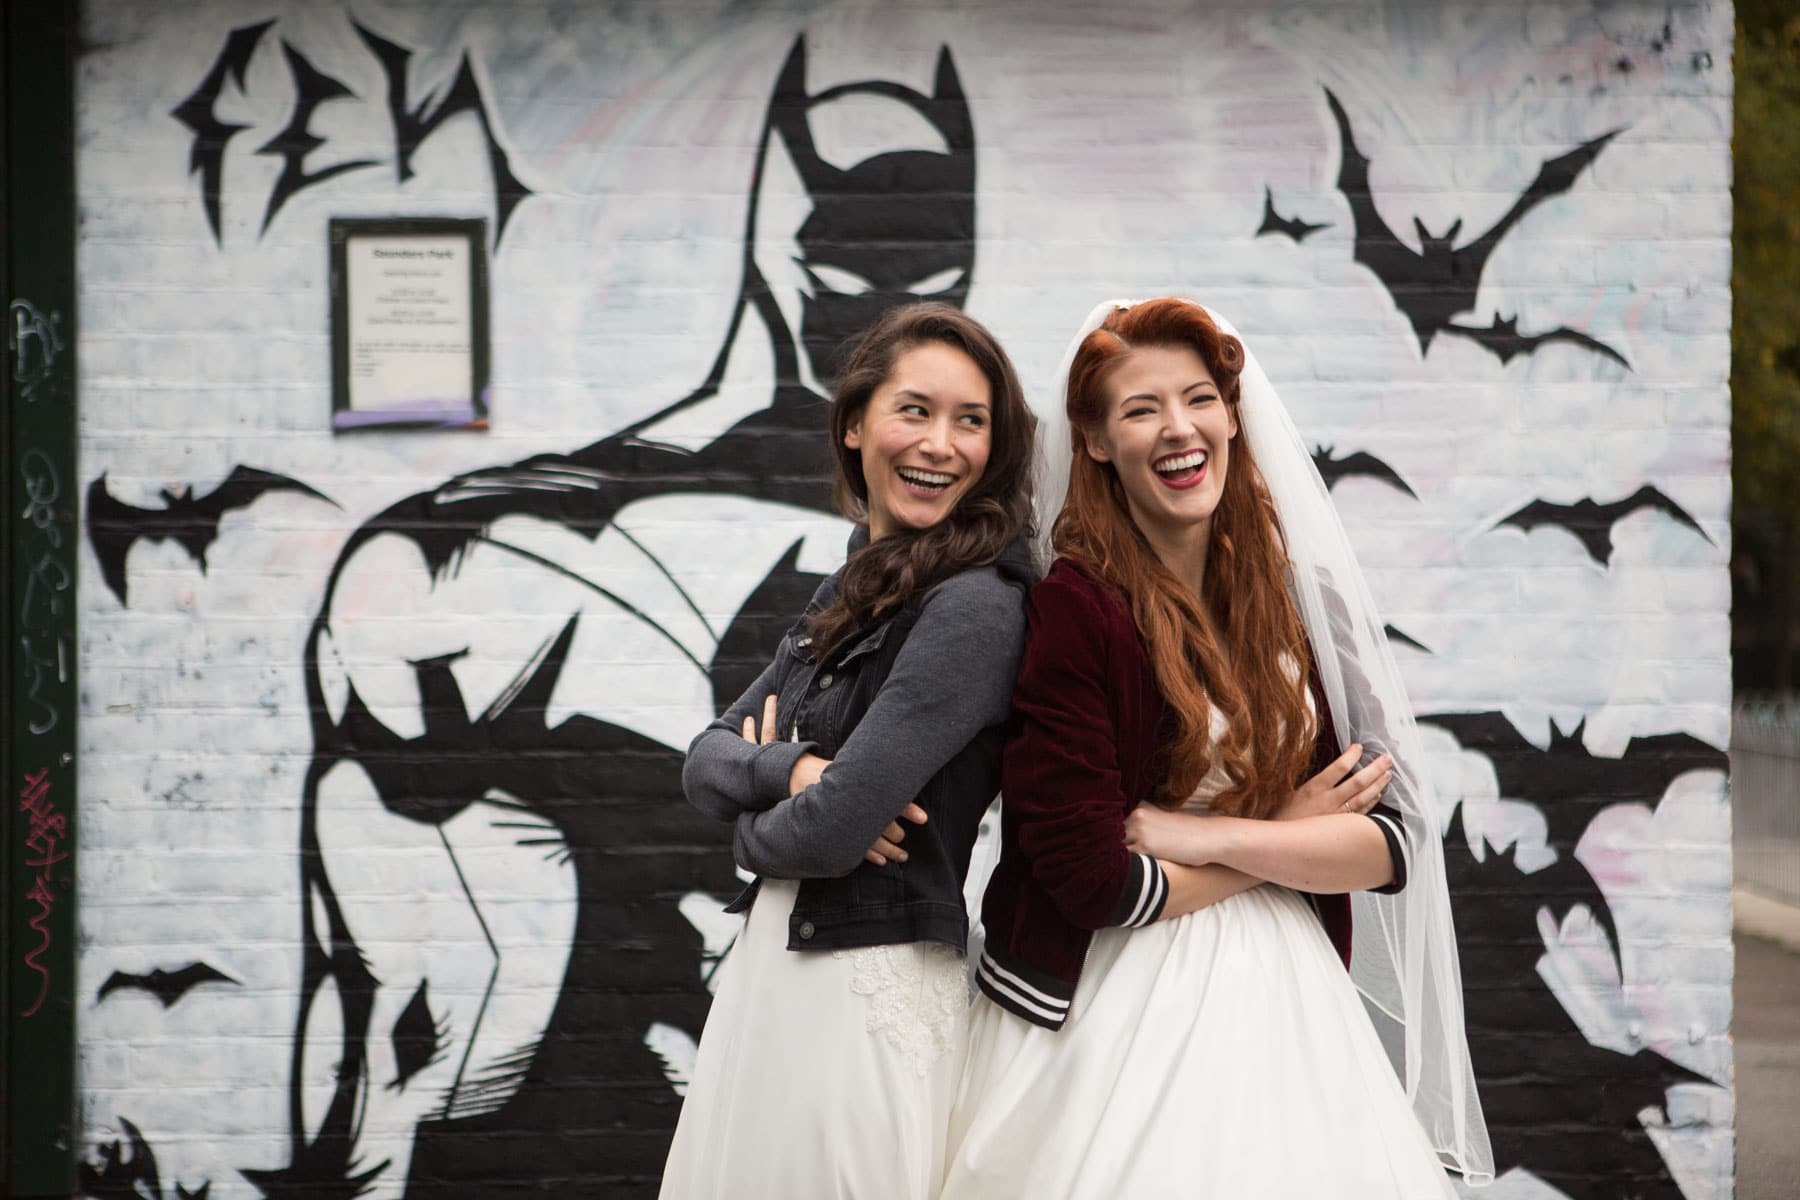 Lesbian brides in wedding dresses and bomber jackets pose back to back in front of Batman mural